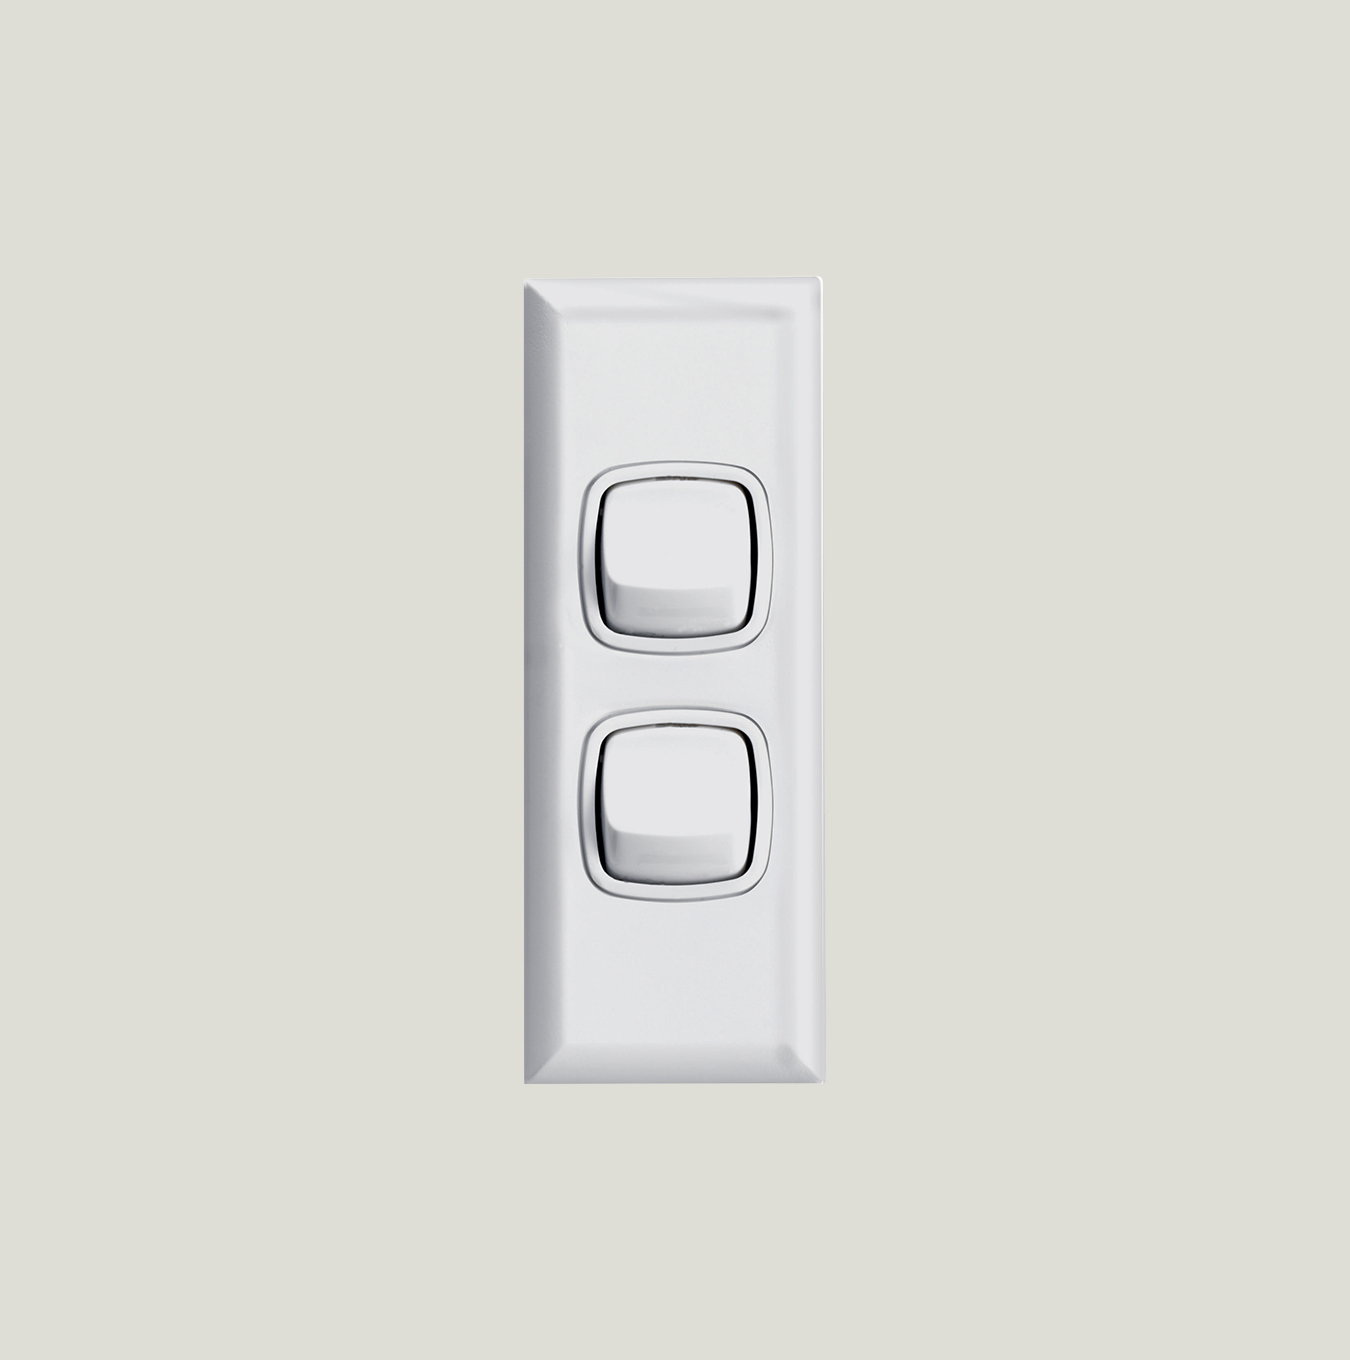 Hpm Architrave Switch Wiring Diagram - Wiring Diagram